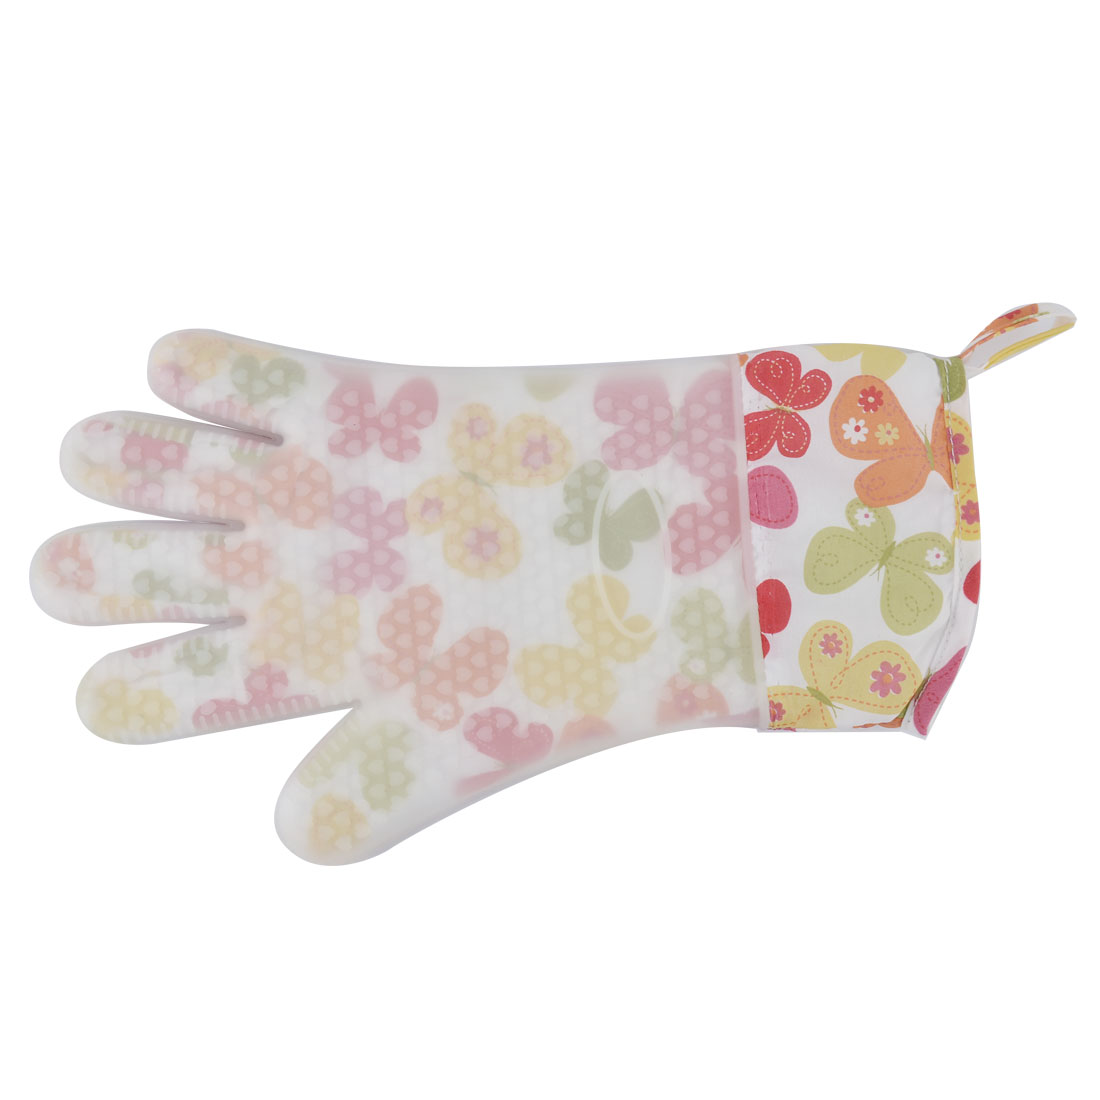 Household Silicone Flower Butterfly Pattern Heat Resistant Oven Mitt Glove Colorful